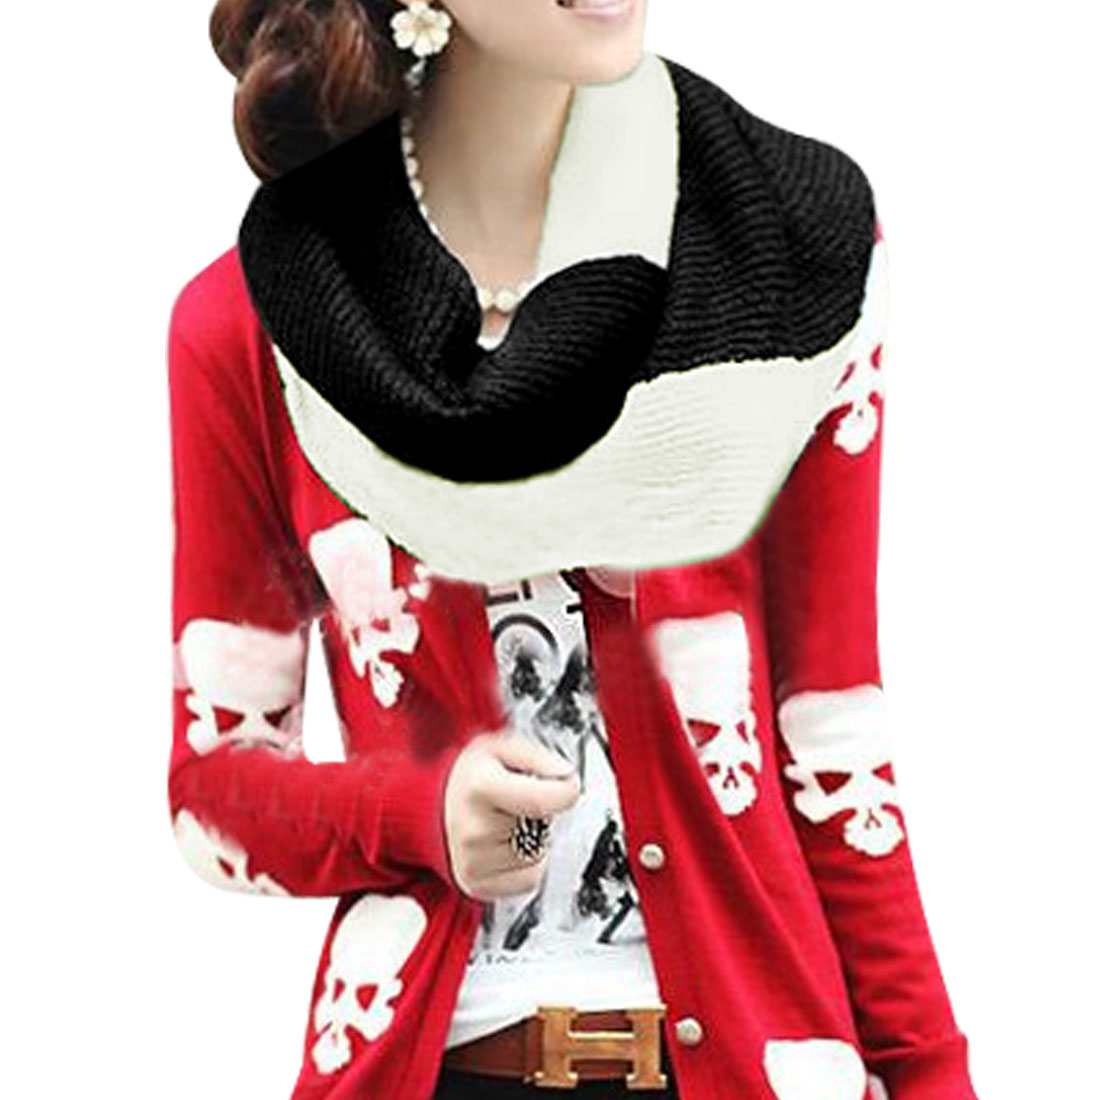 Ladies White Black Neck Warmer Rib-Knit Tube Scarf Shawl